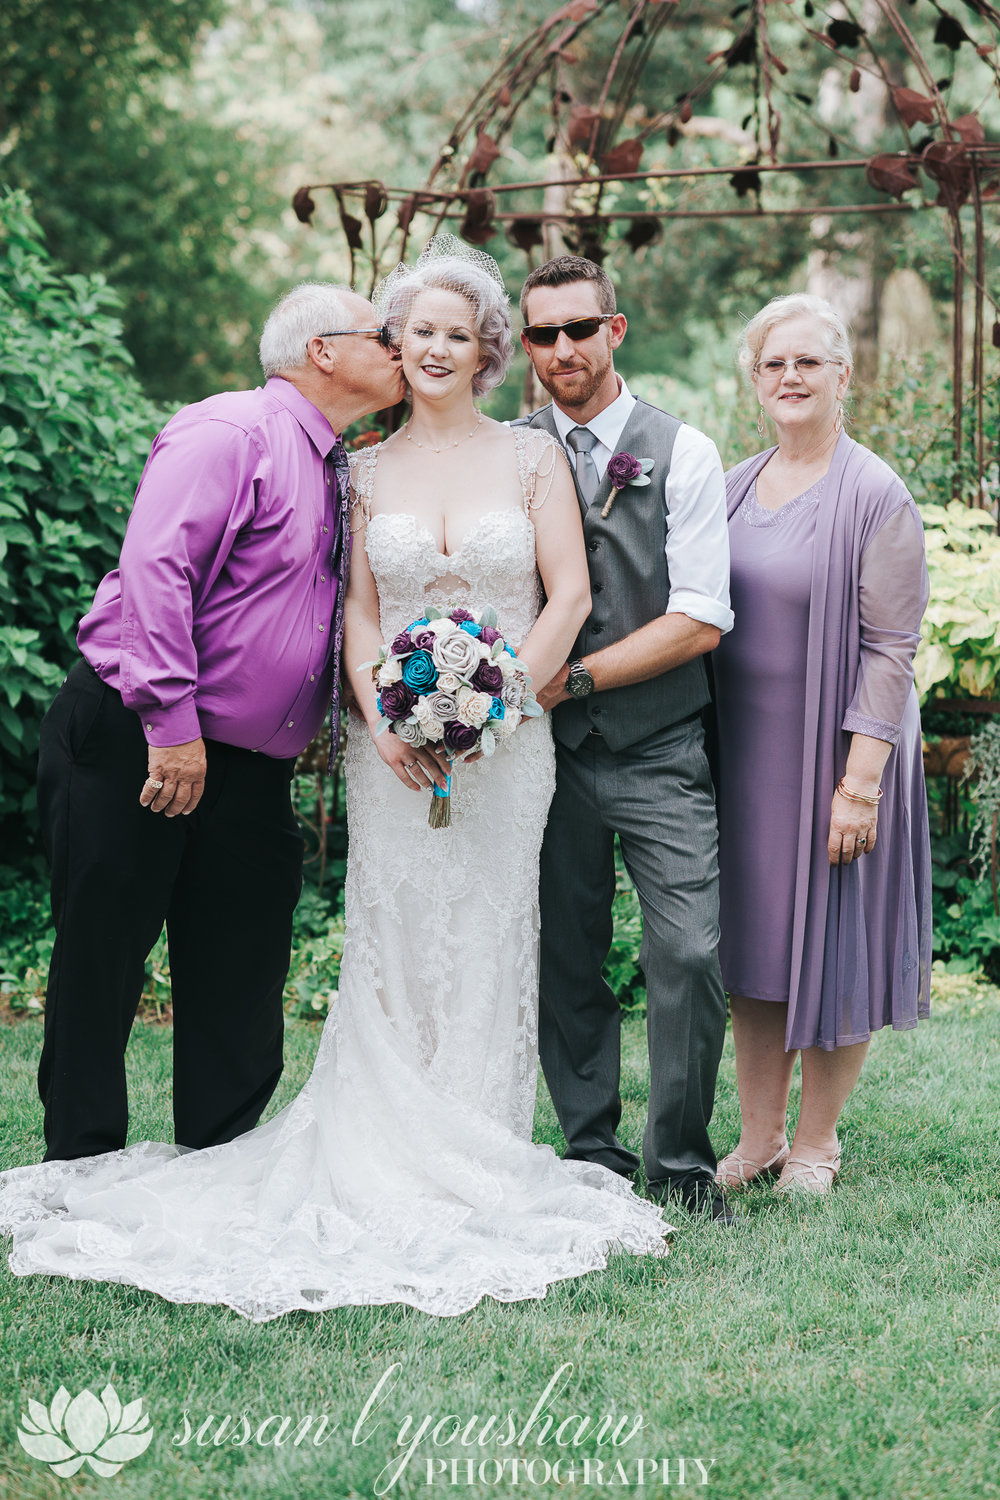 BLOG Kissy and Zane Diehl 07-14-2018 SLY Photography-135.jpg